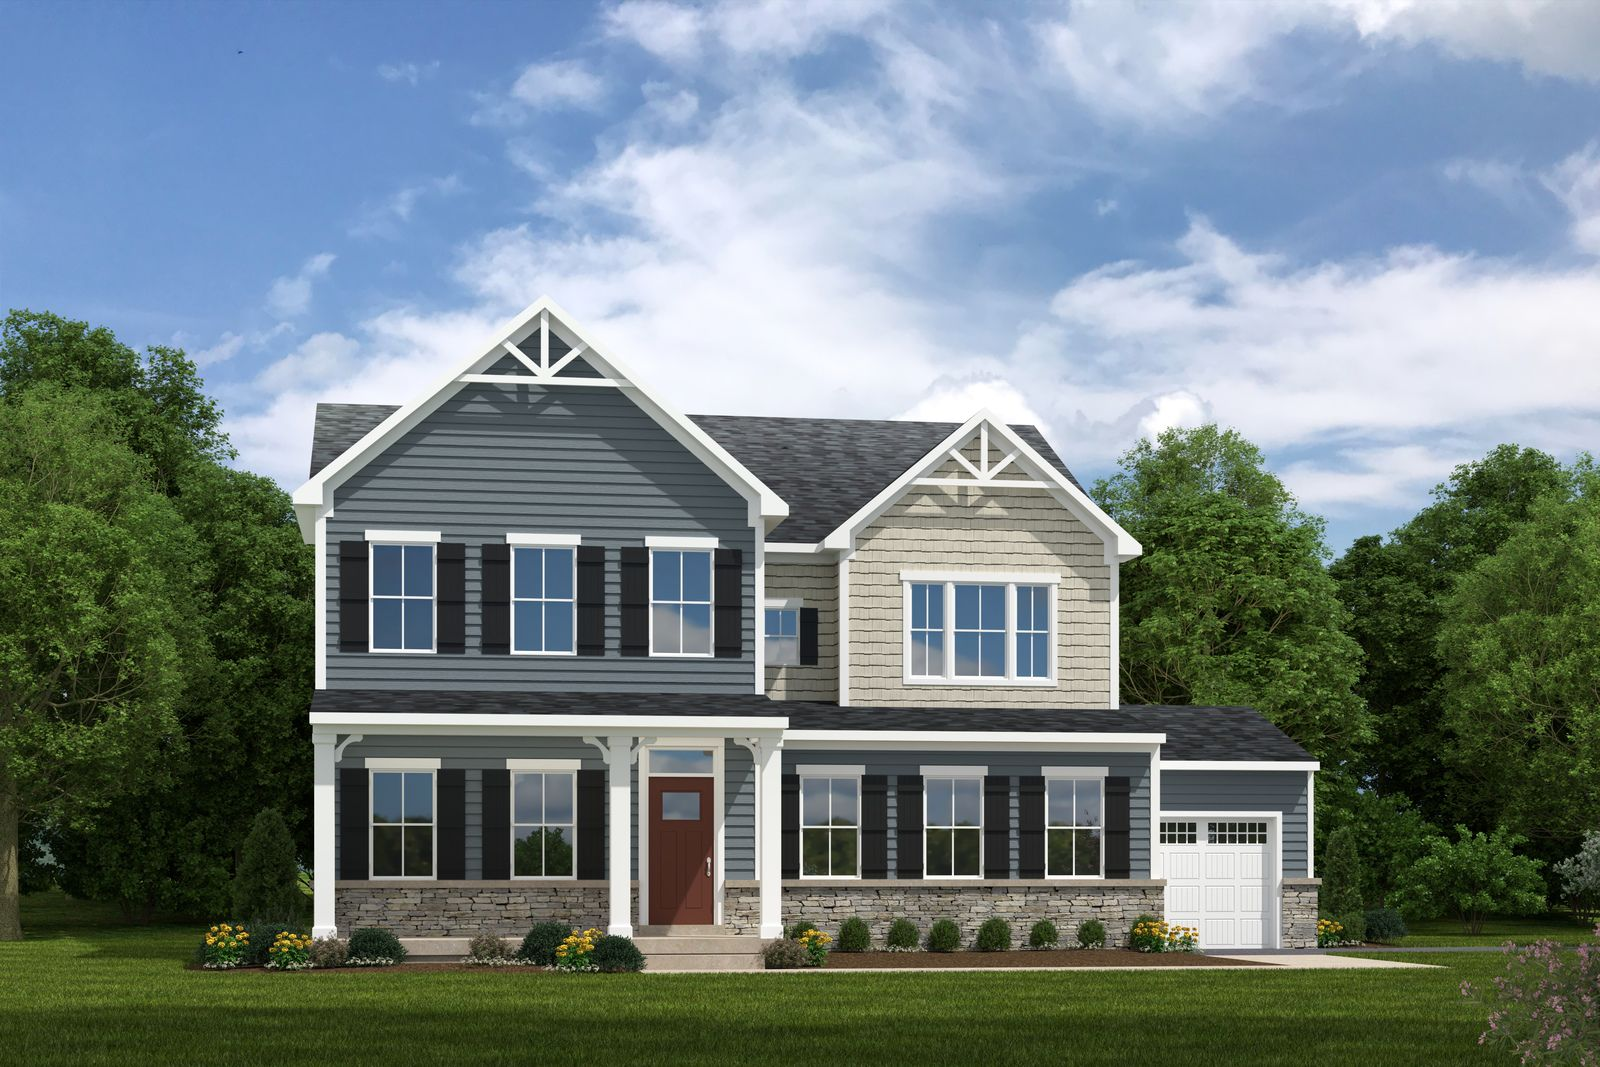 HARTLAND IS COMING SOON TO LOUDOUN COUNTY!:New elegant single-family homes on sought after spacious homesites with resort-style amenities!Click here to join the VIP list today.